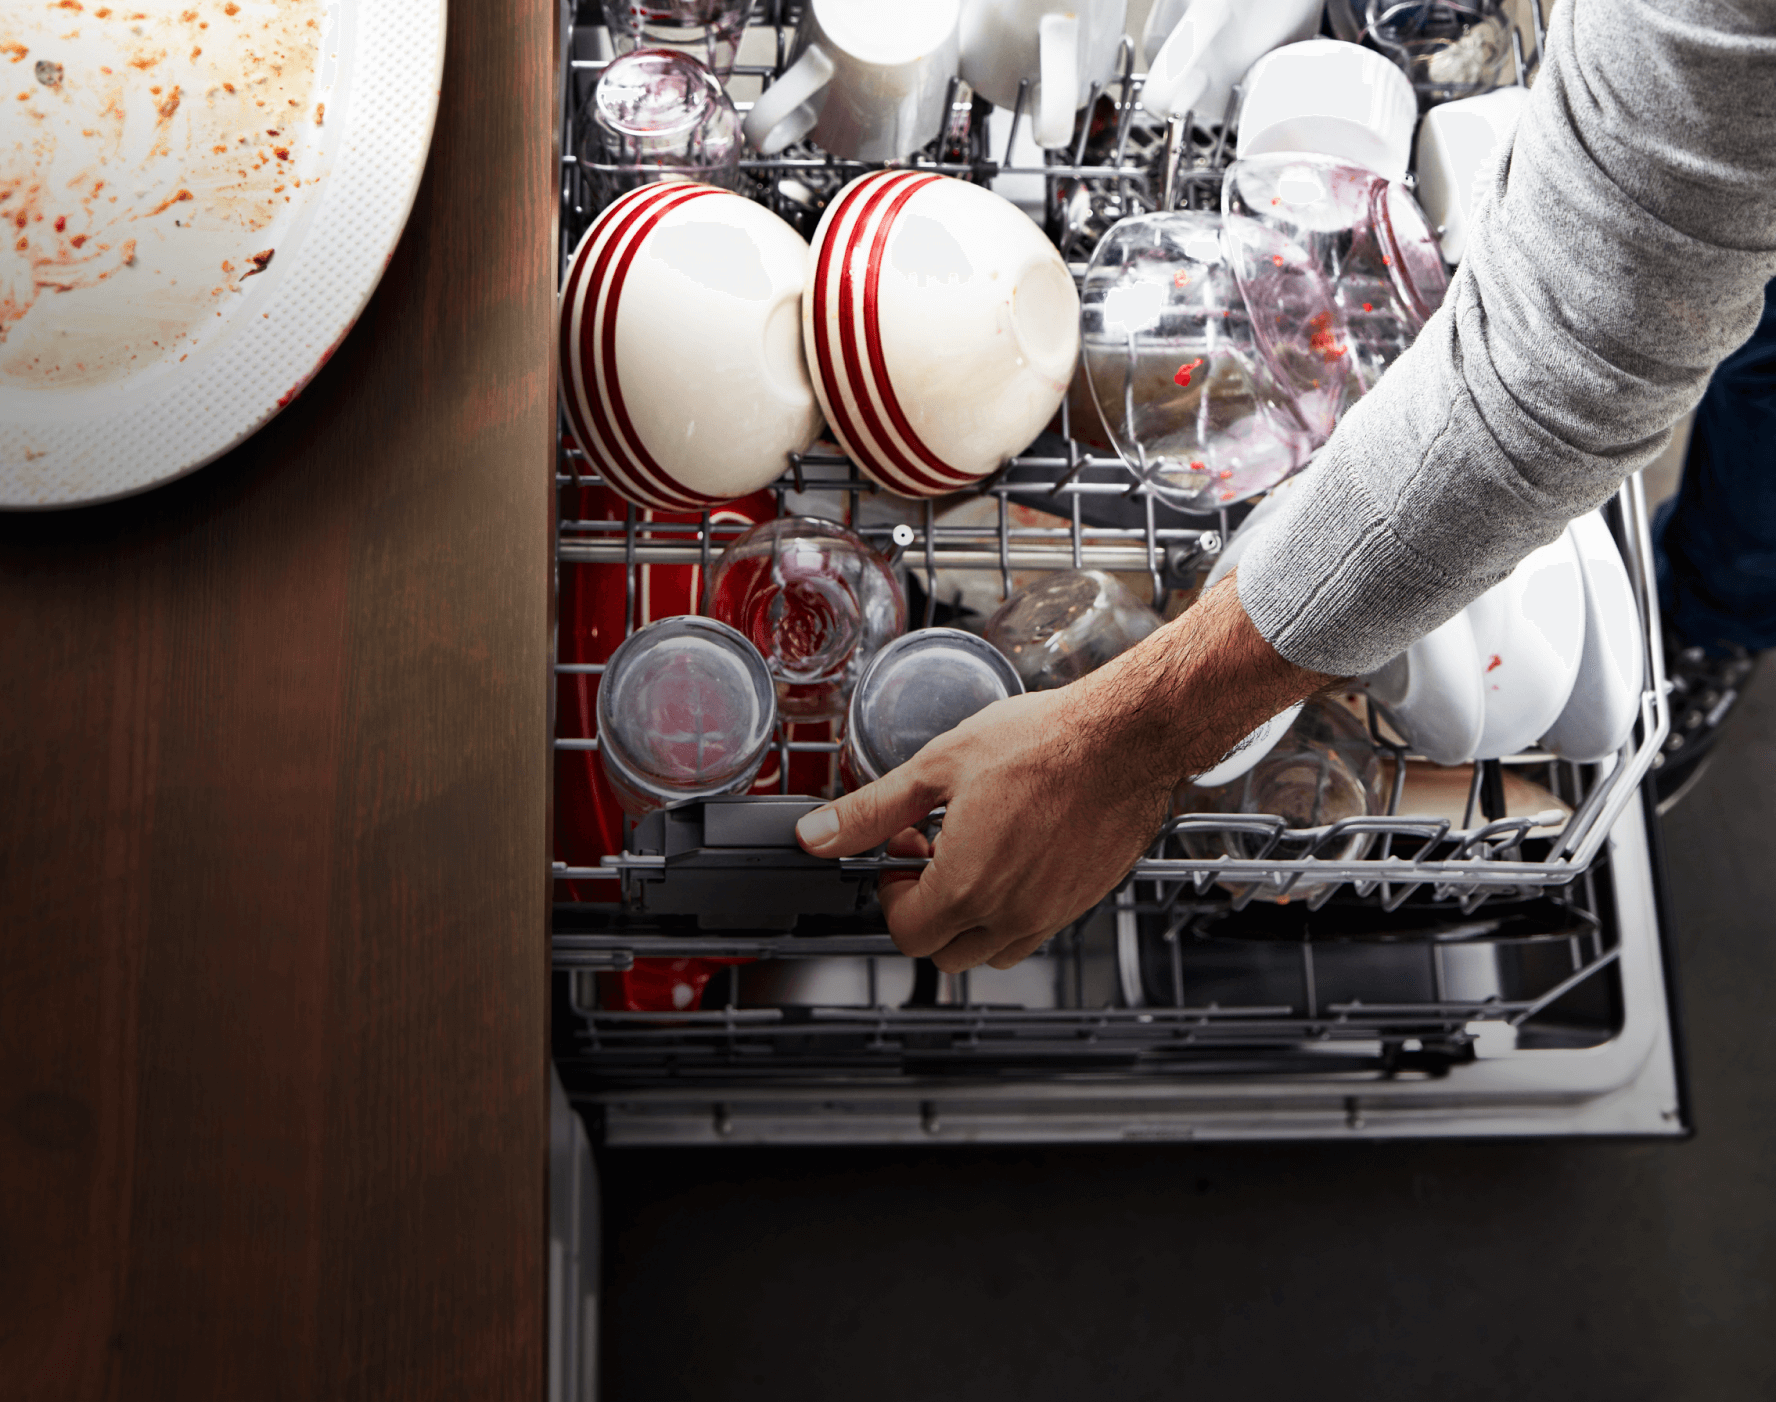 Kitchen Appliances Designed To Bring More To The Table